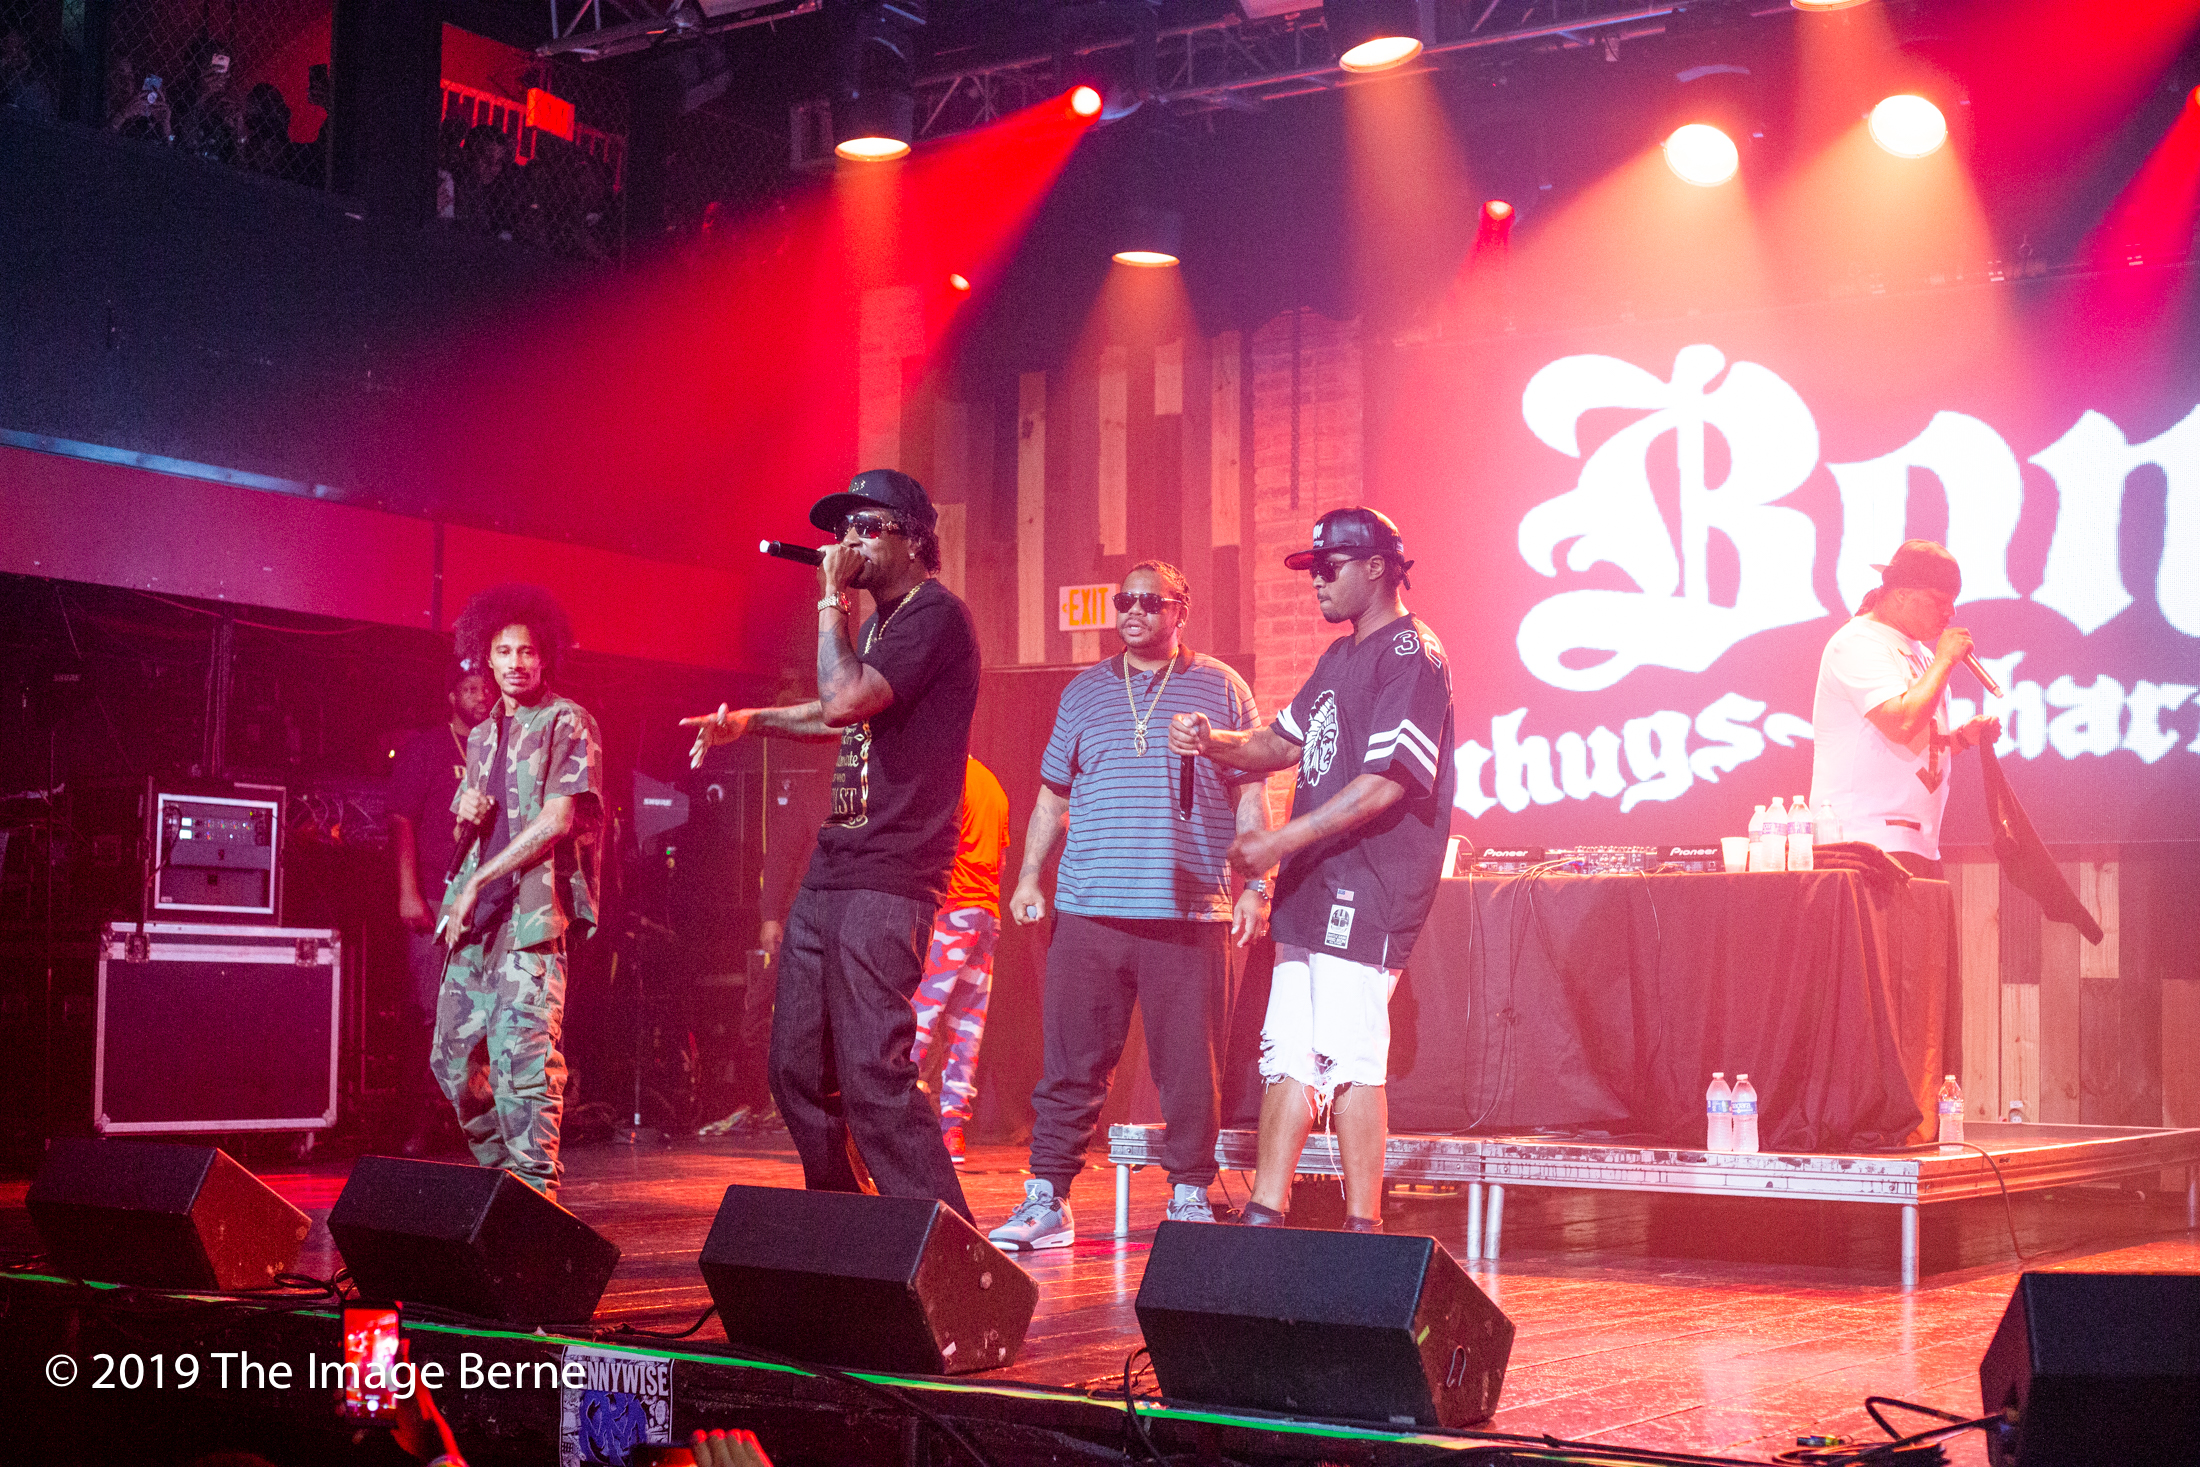 Krayzie Bone, Wish Bone, Flesh-N-Bone, Layzie Bone, and Bizzy Bone-055.jpg